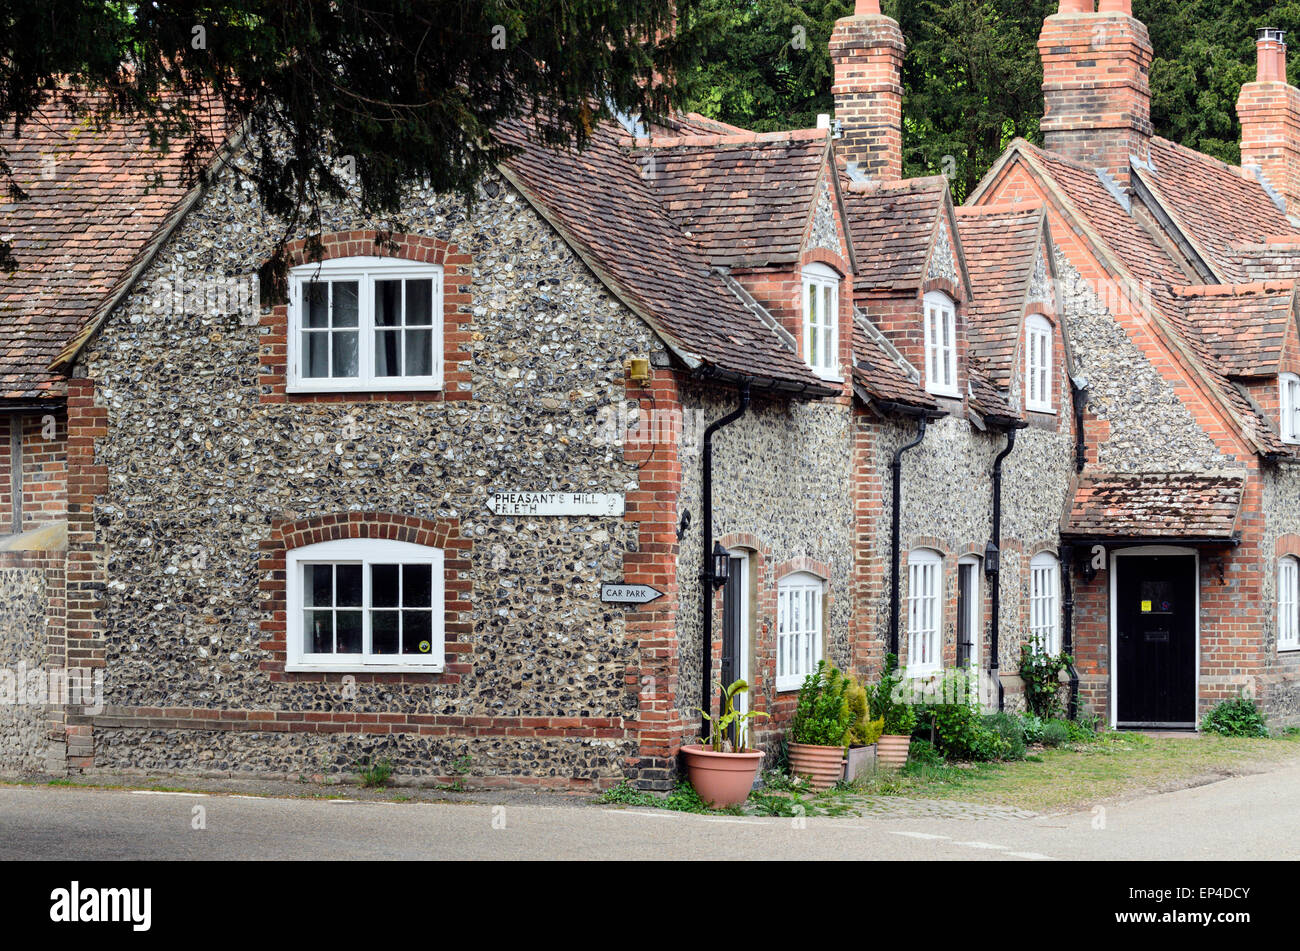 A row of flint cottages in Hambleden, Buckingshamshire. Hambleden is a picturesque village in the Chiltern Hills - Stock Image